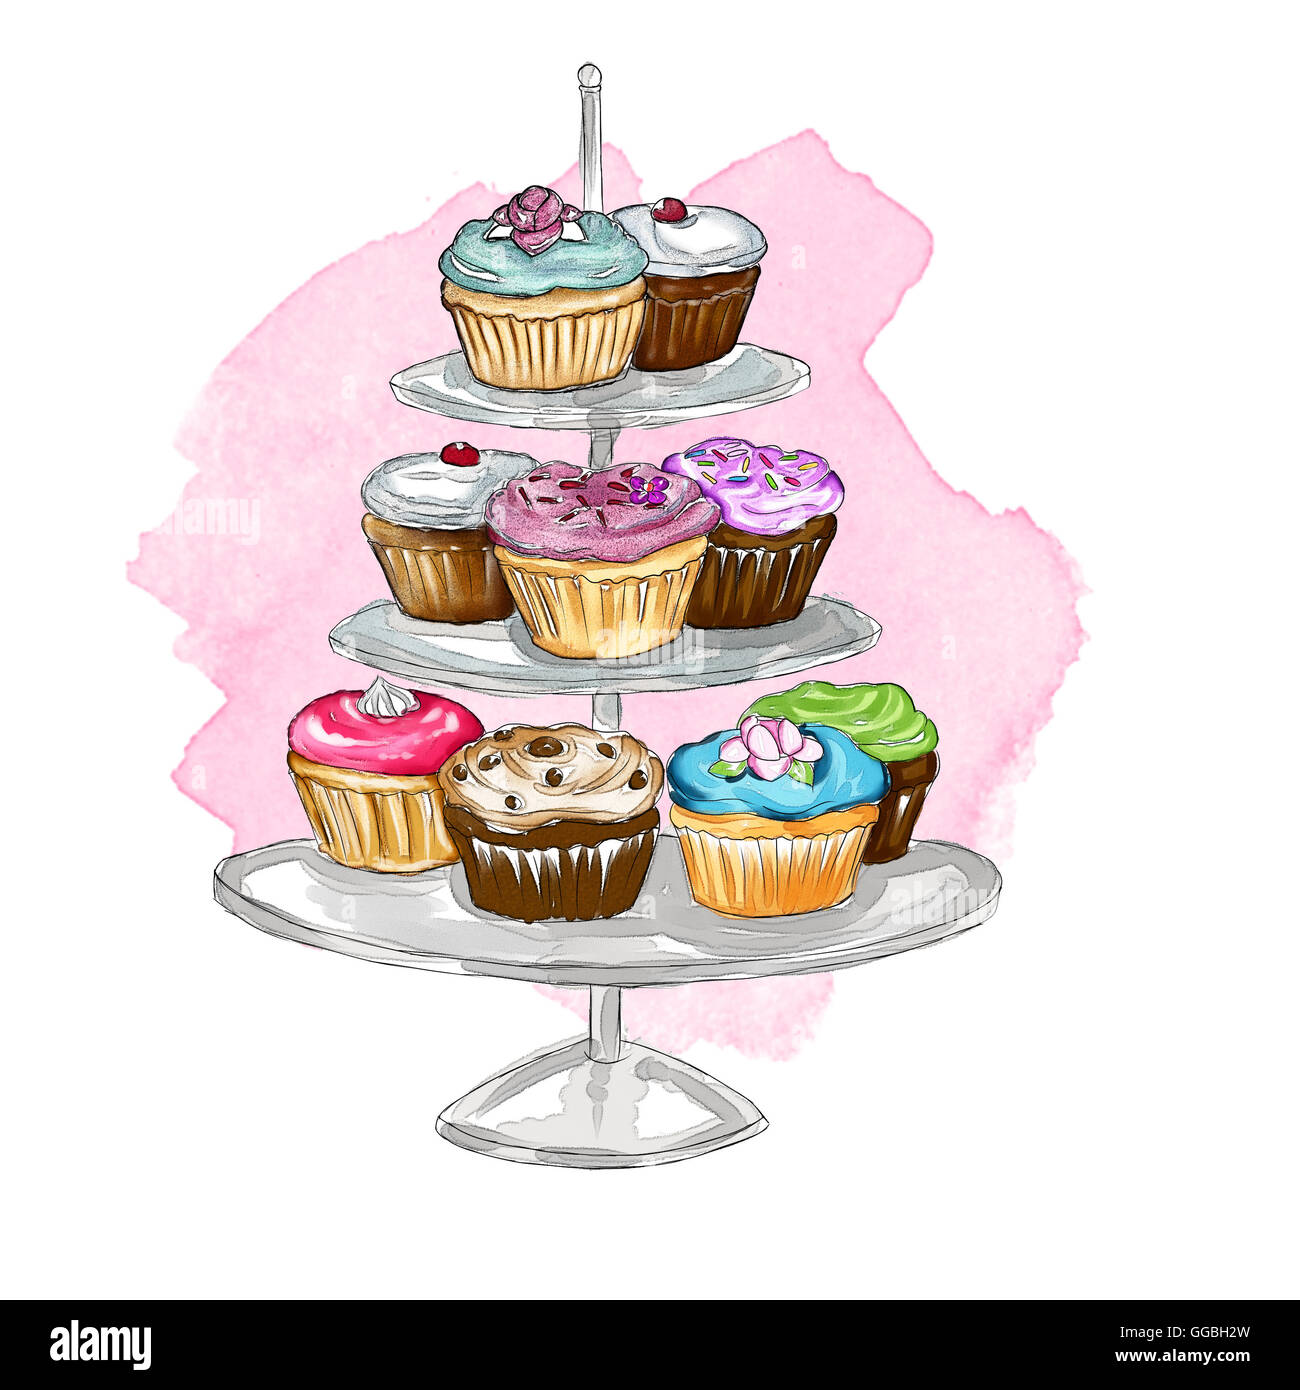 Watercolor Illustration On Cupcakes On A Cake Stand Stock Photo